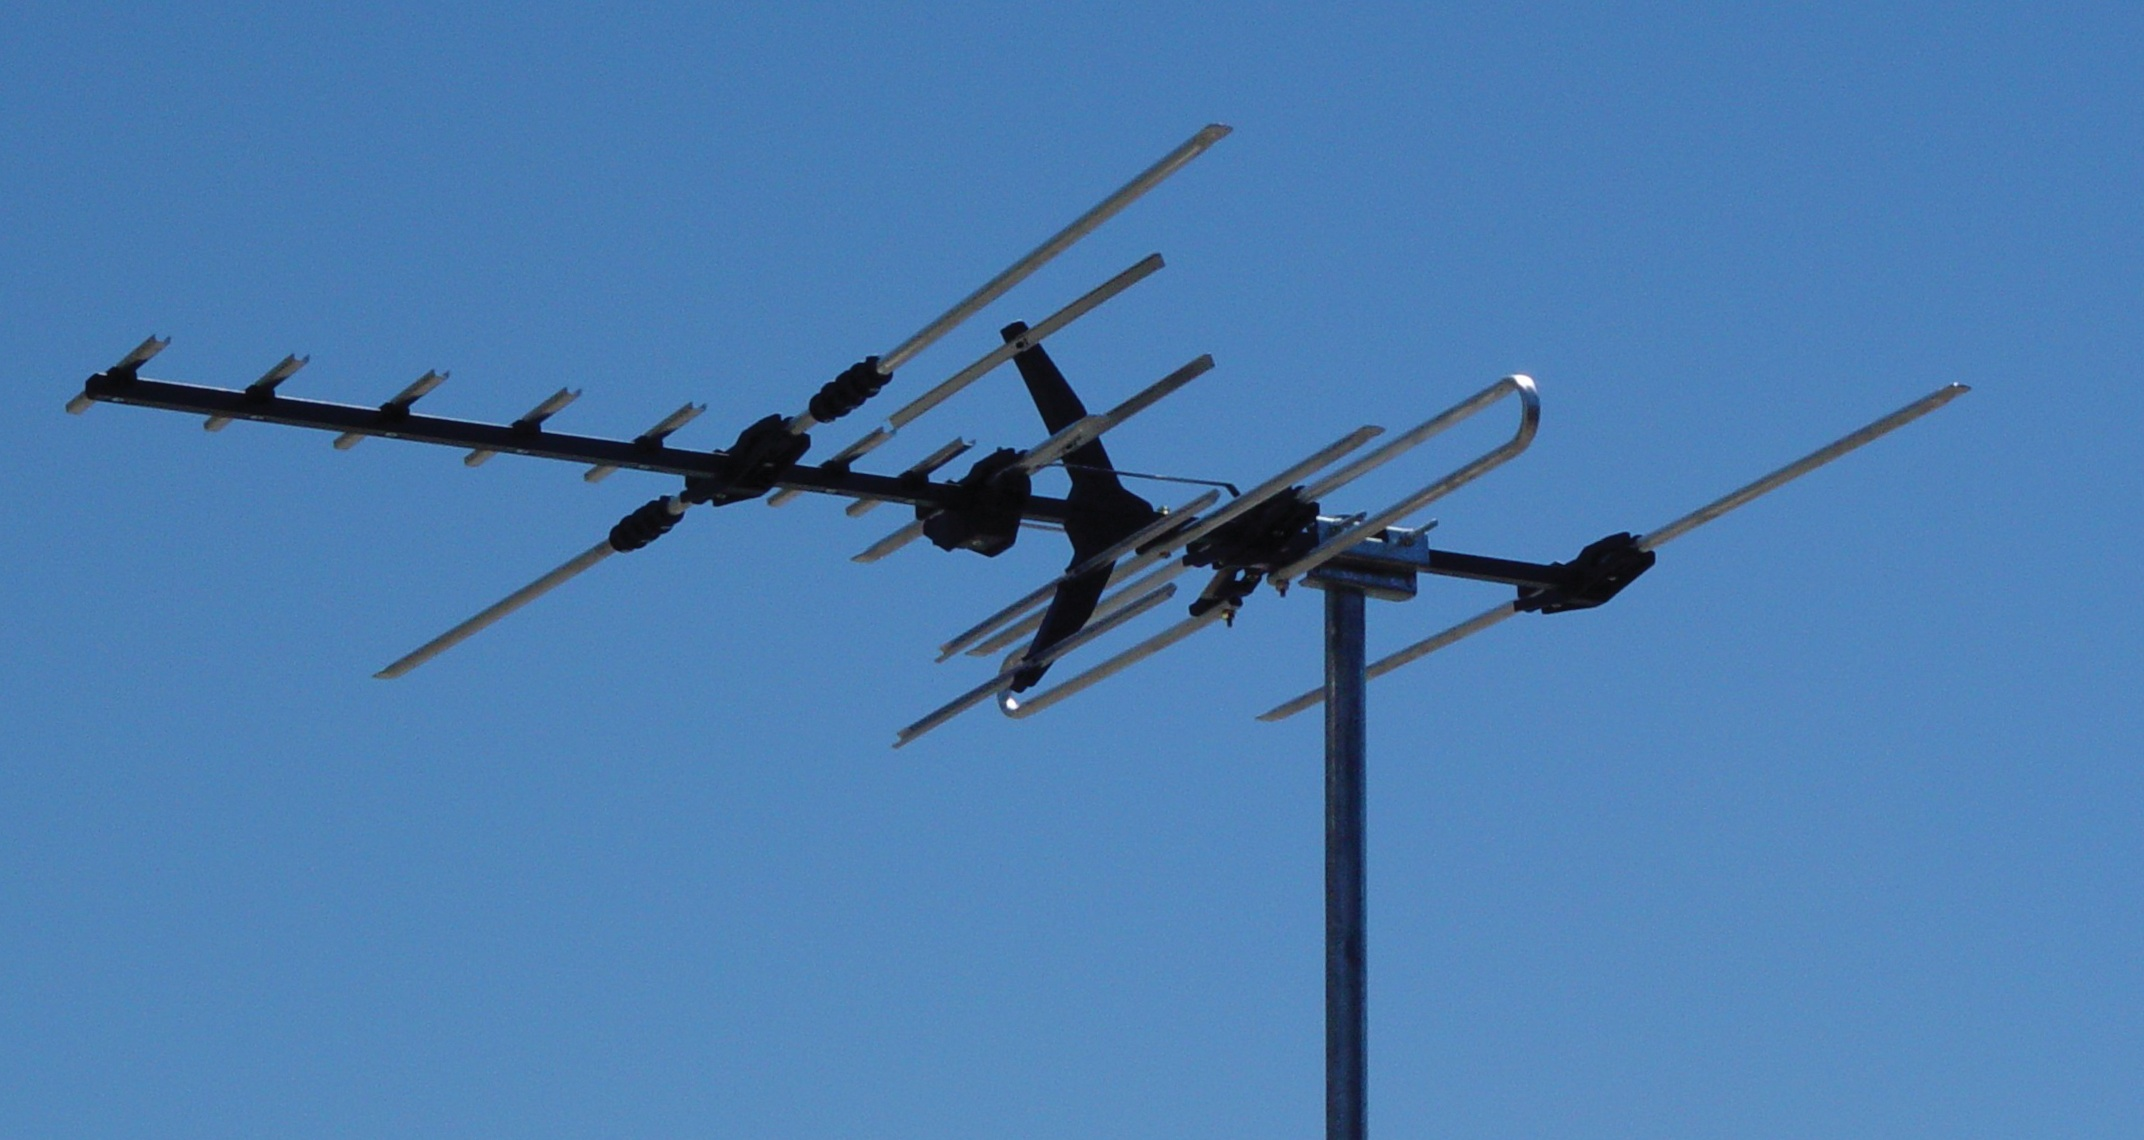 Enjoy an incredible TV viewing experience installing antennas